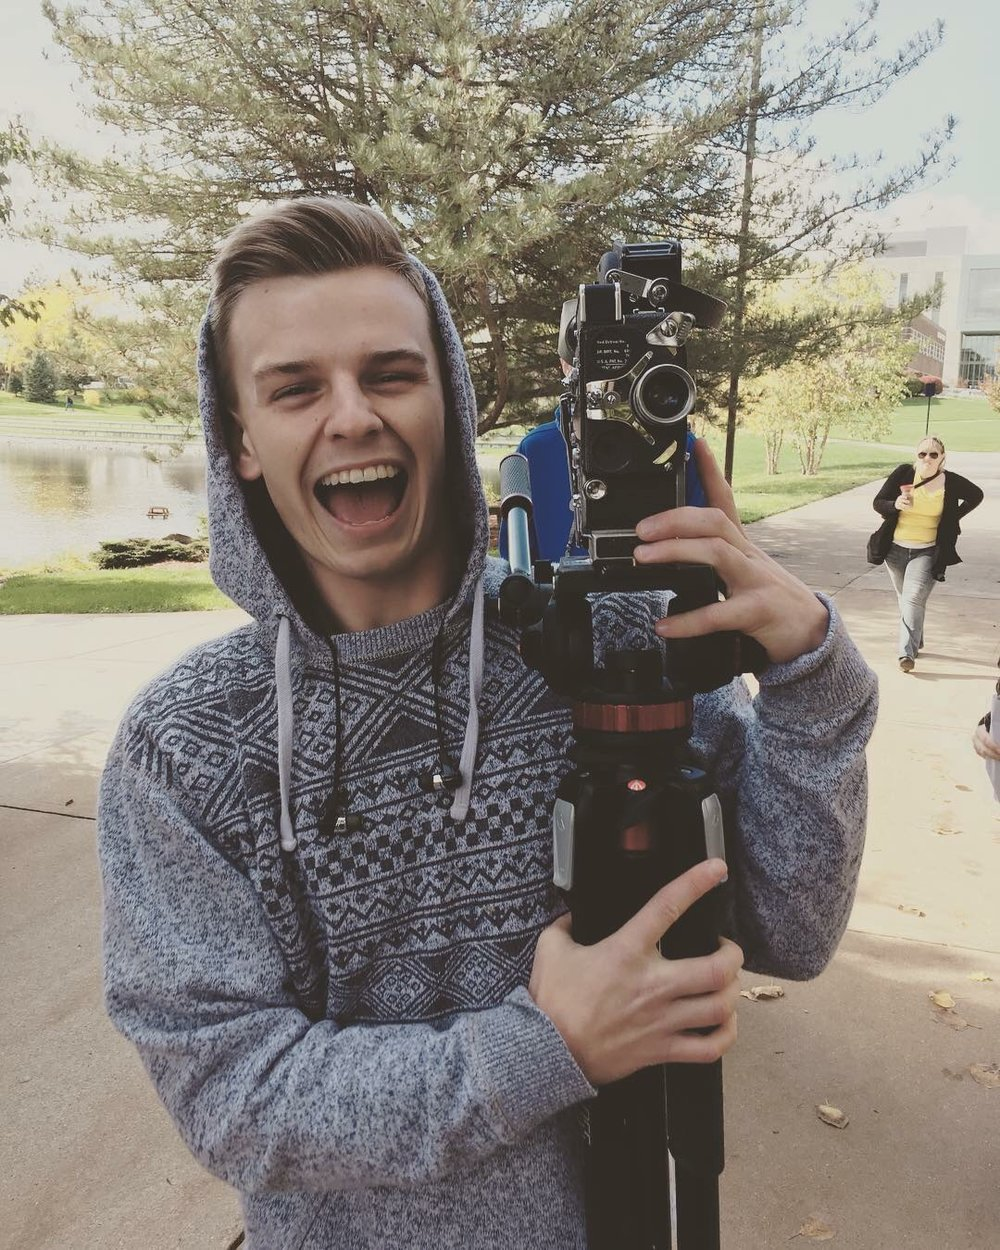 Chad Hilliard is a Grand Valley State University Film & Video student, working as the fall 2018 assistant producer for  Feel Like You Belong . Graduating in December 2018, Chad's focus is in producing, with a goal to bring that skill set to the narrative television industry. Producing is a powerful fit for him since he loves associating with others and making people's stories come to life.